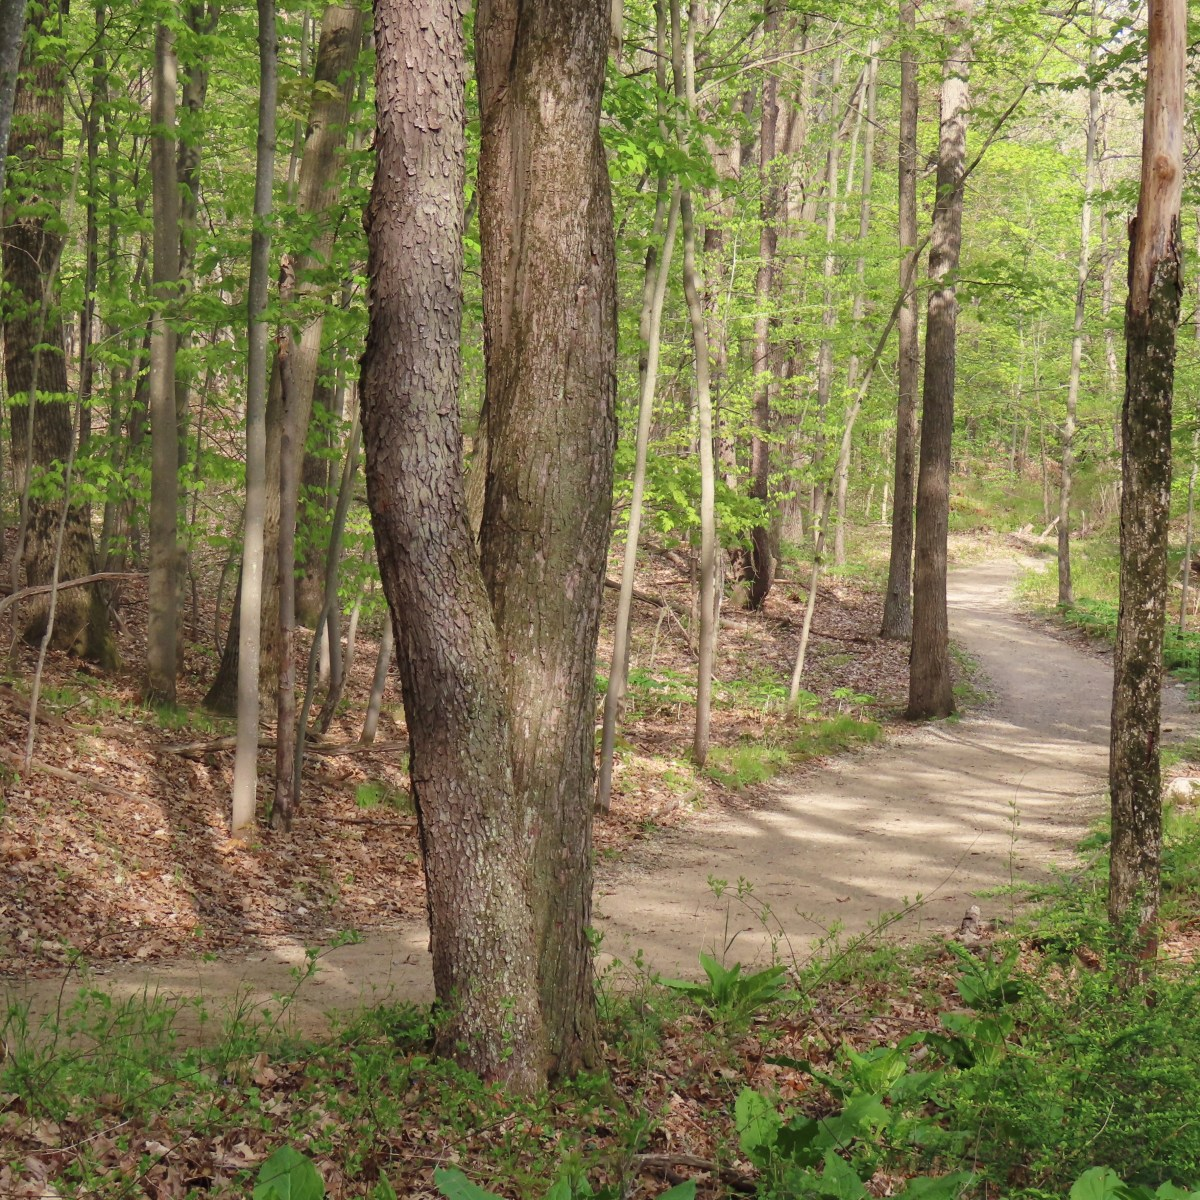 A dirt path winds through a wooded area in the springtime